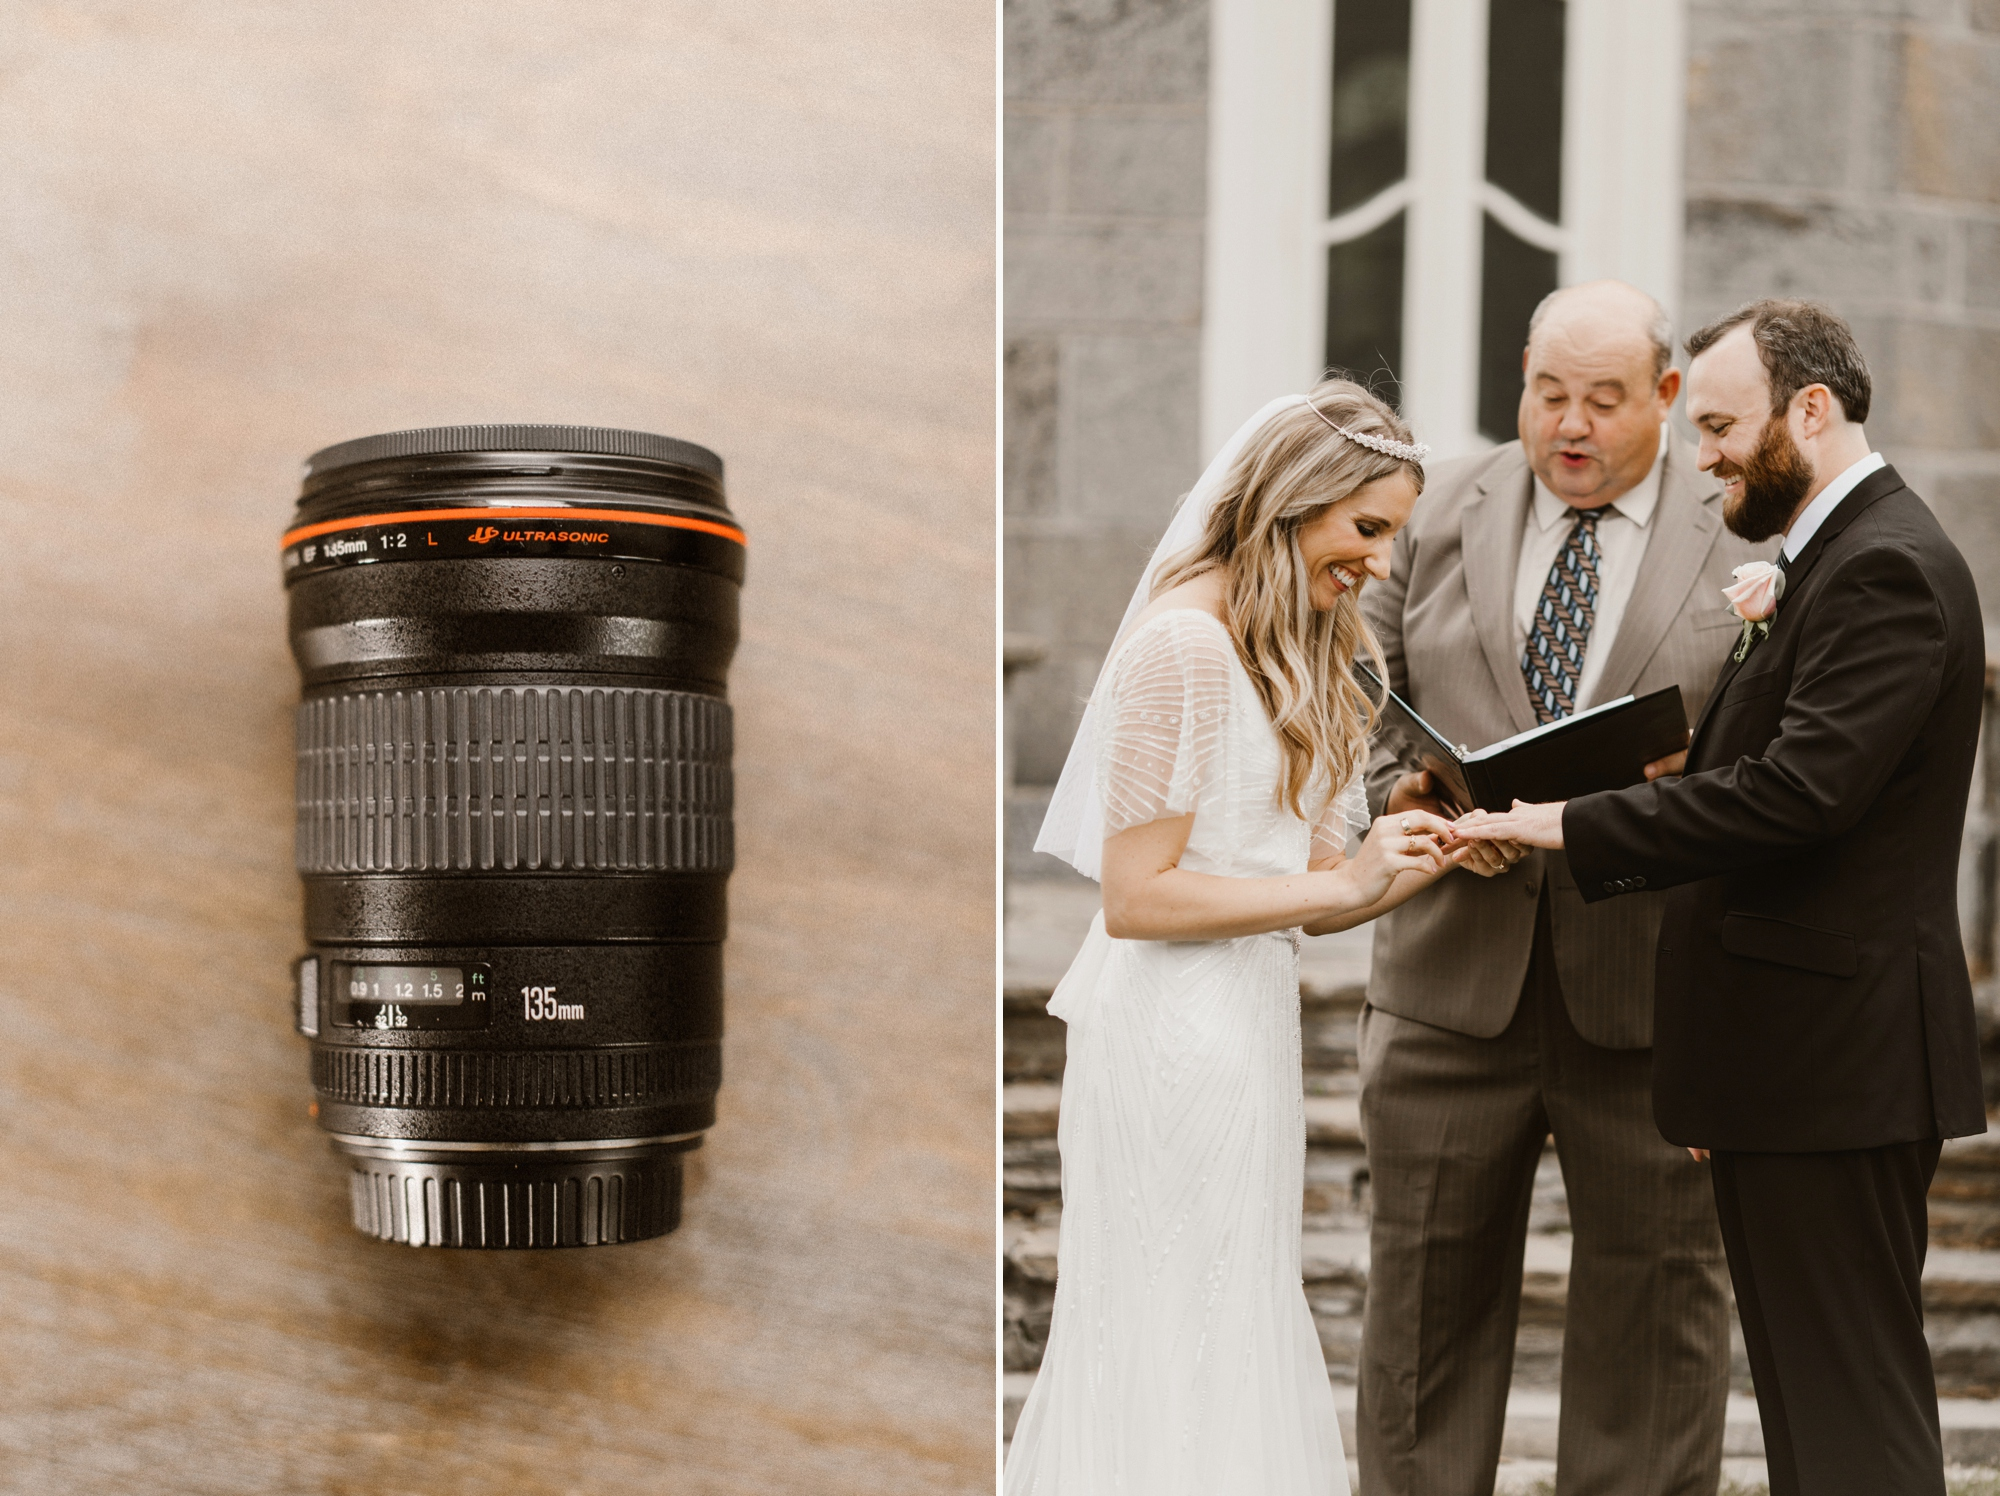 kates-gear-2017-3_canon-5d-mark-iv-gear-bag-baltimore-annapolis-washington-d-c-maryland-wedding-photographer-earthy-boho-kate-ann-photography-photo